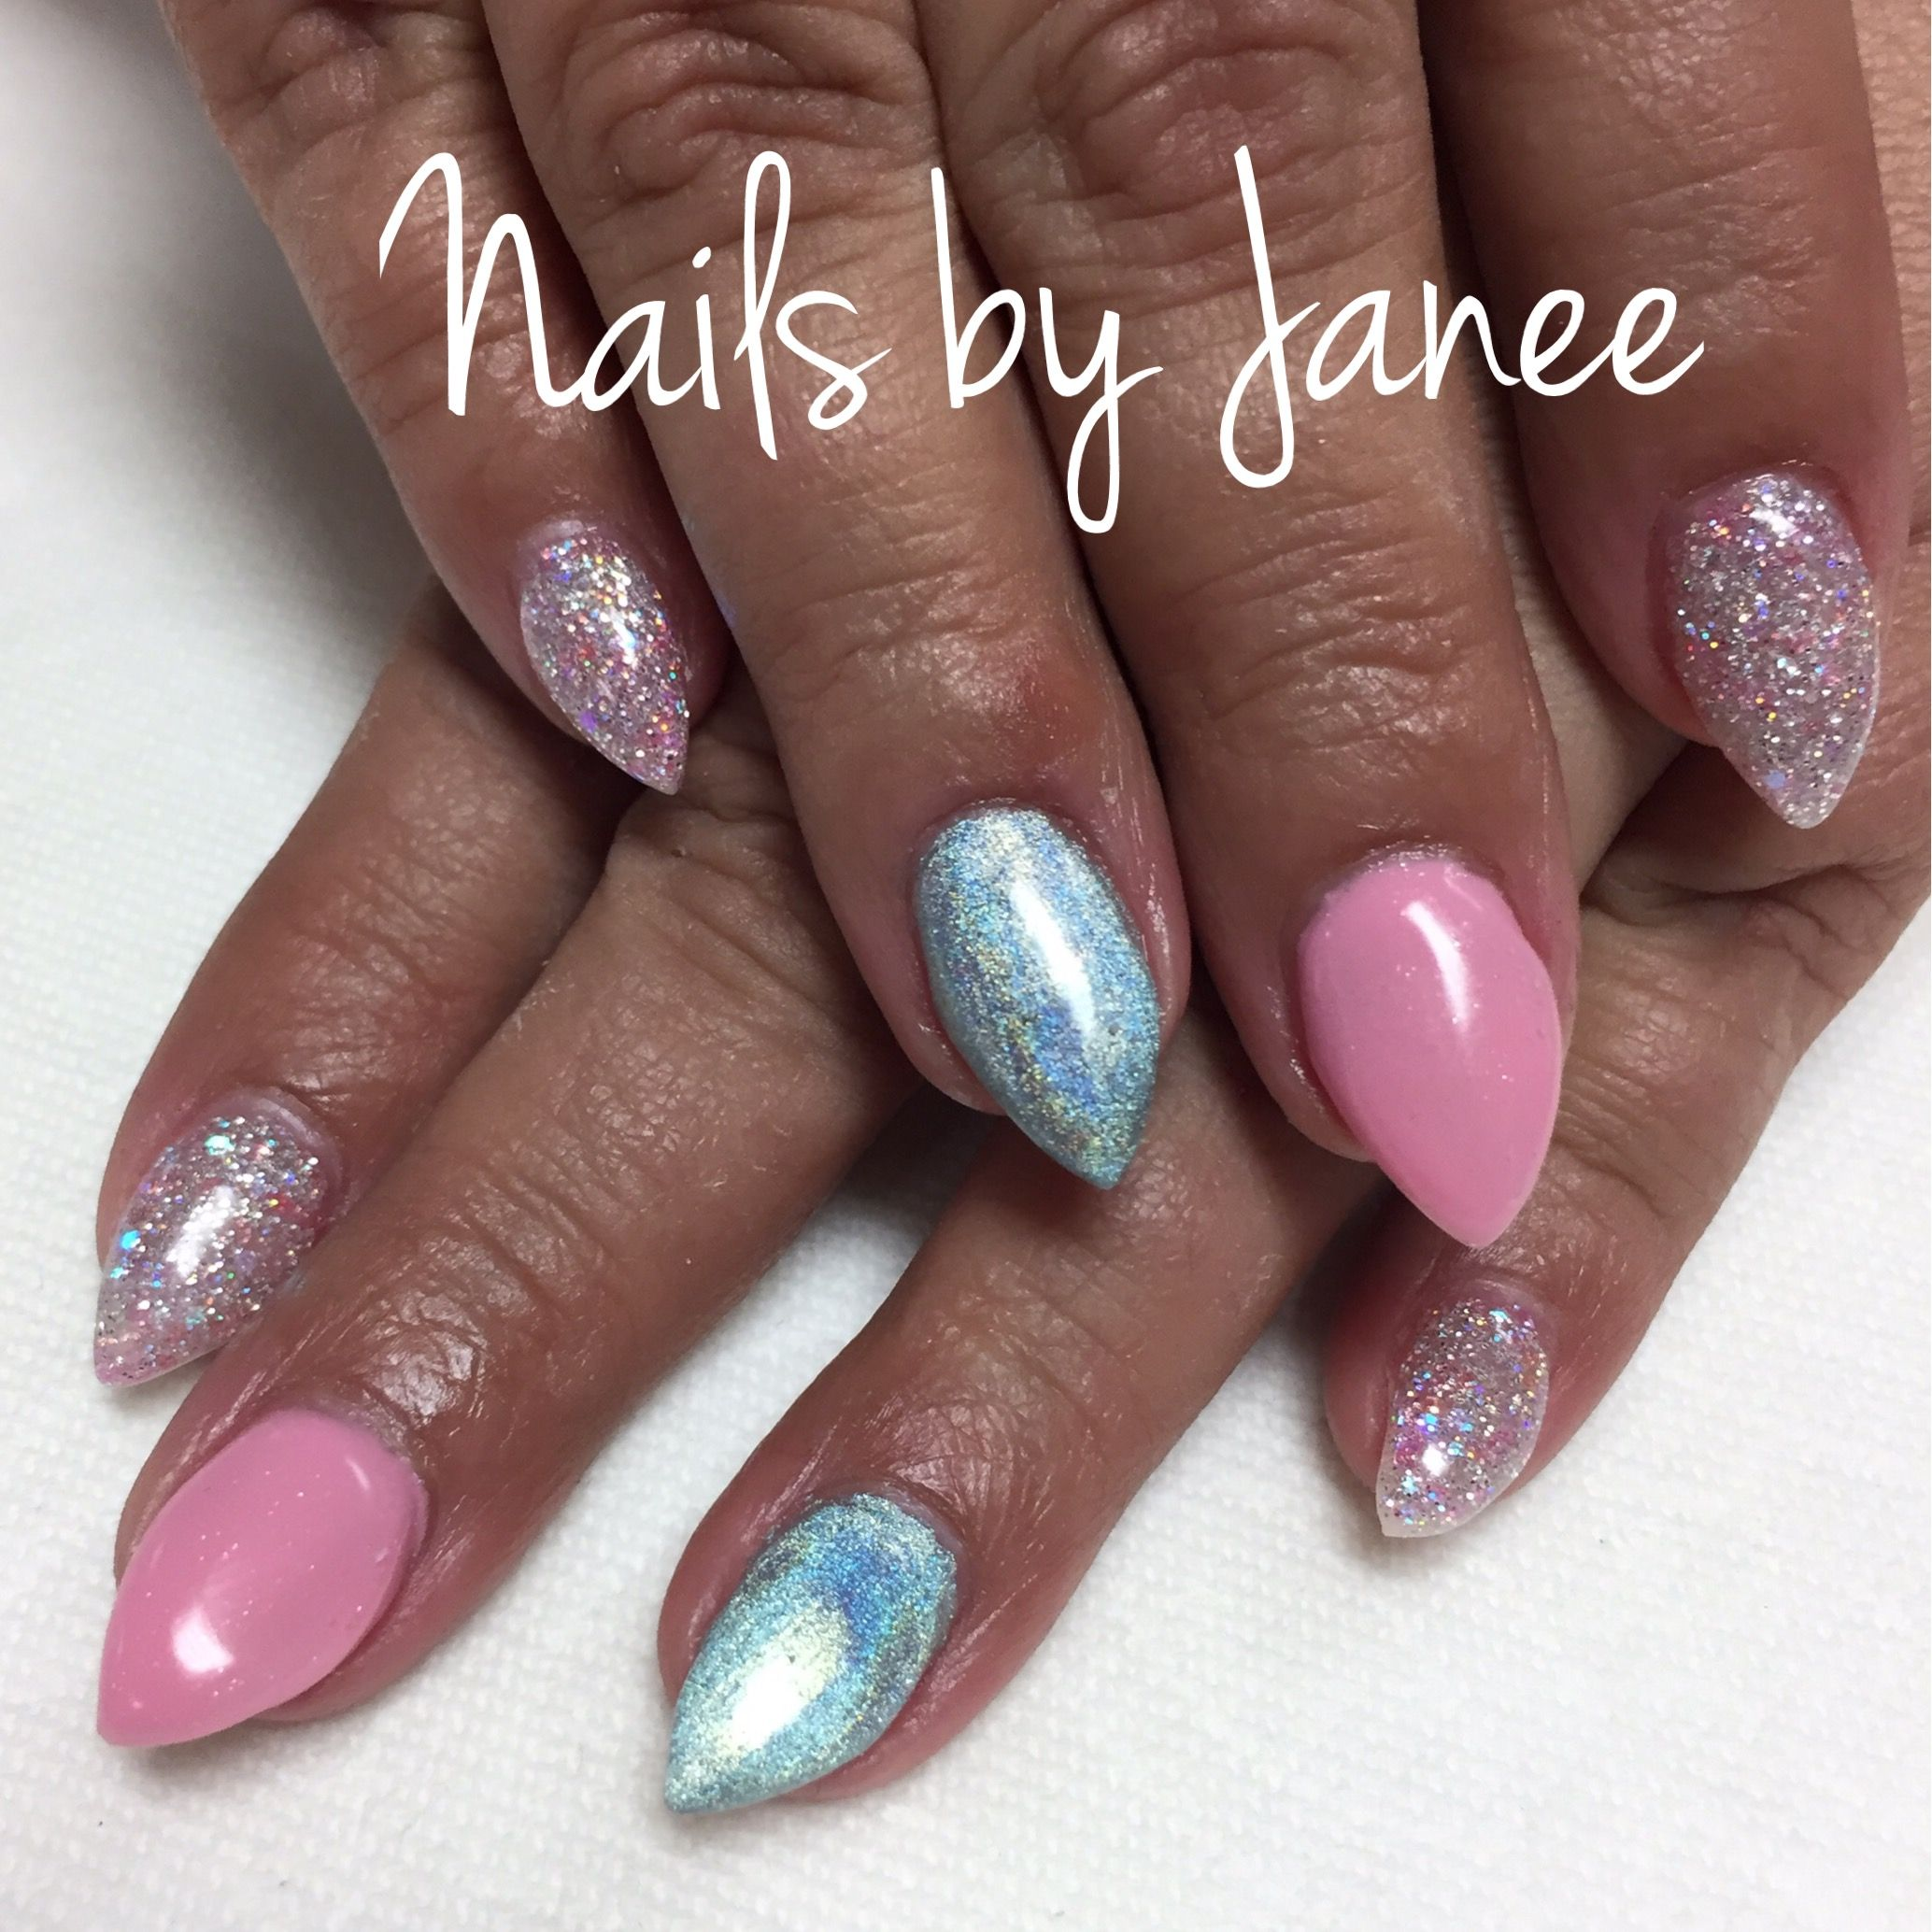 Pink and hologram nails by Janee